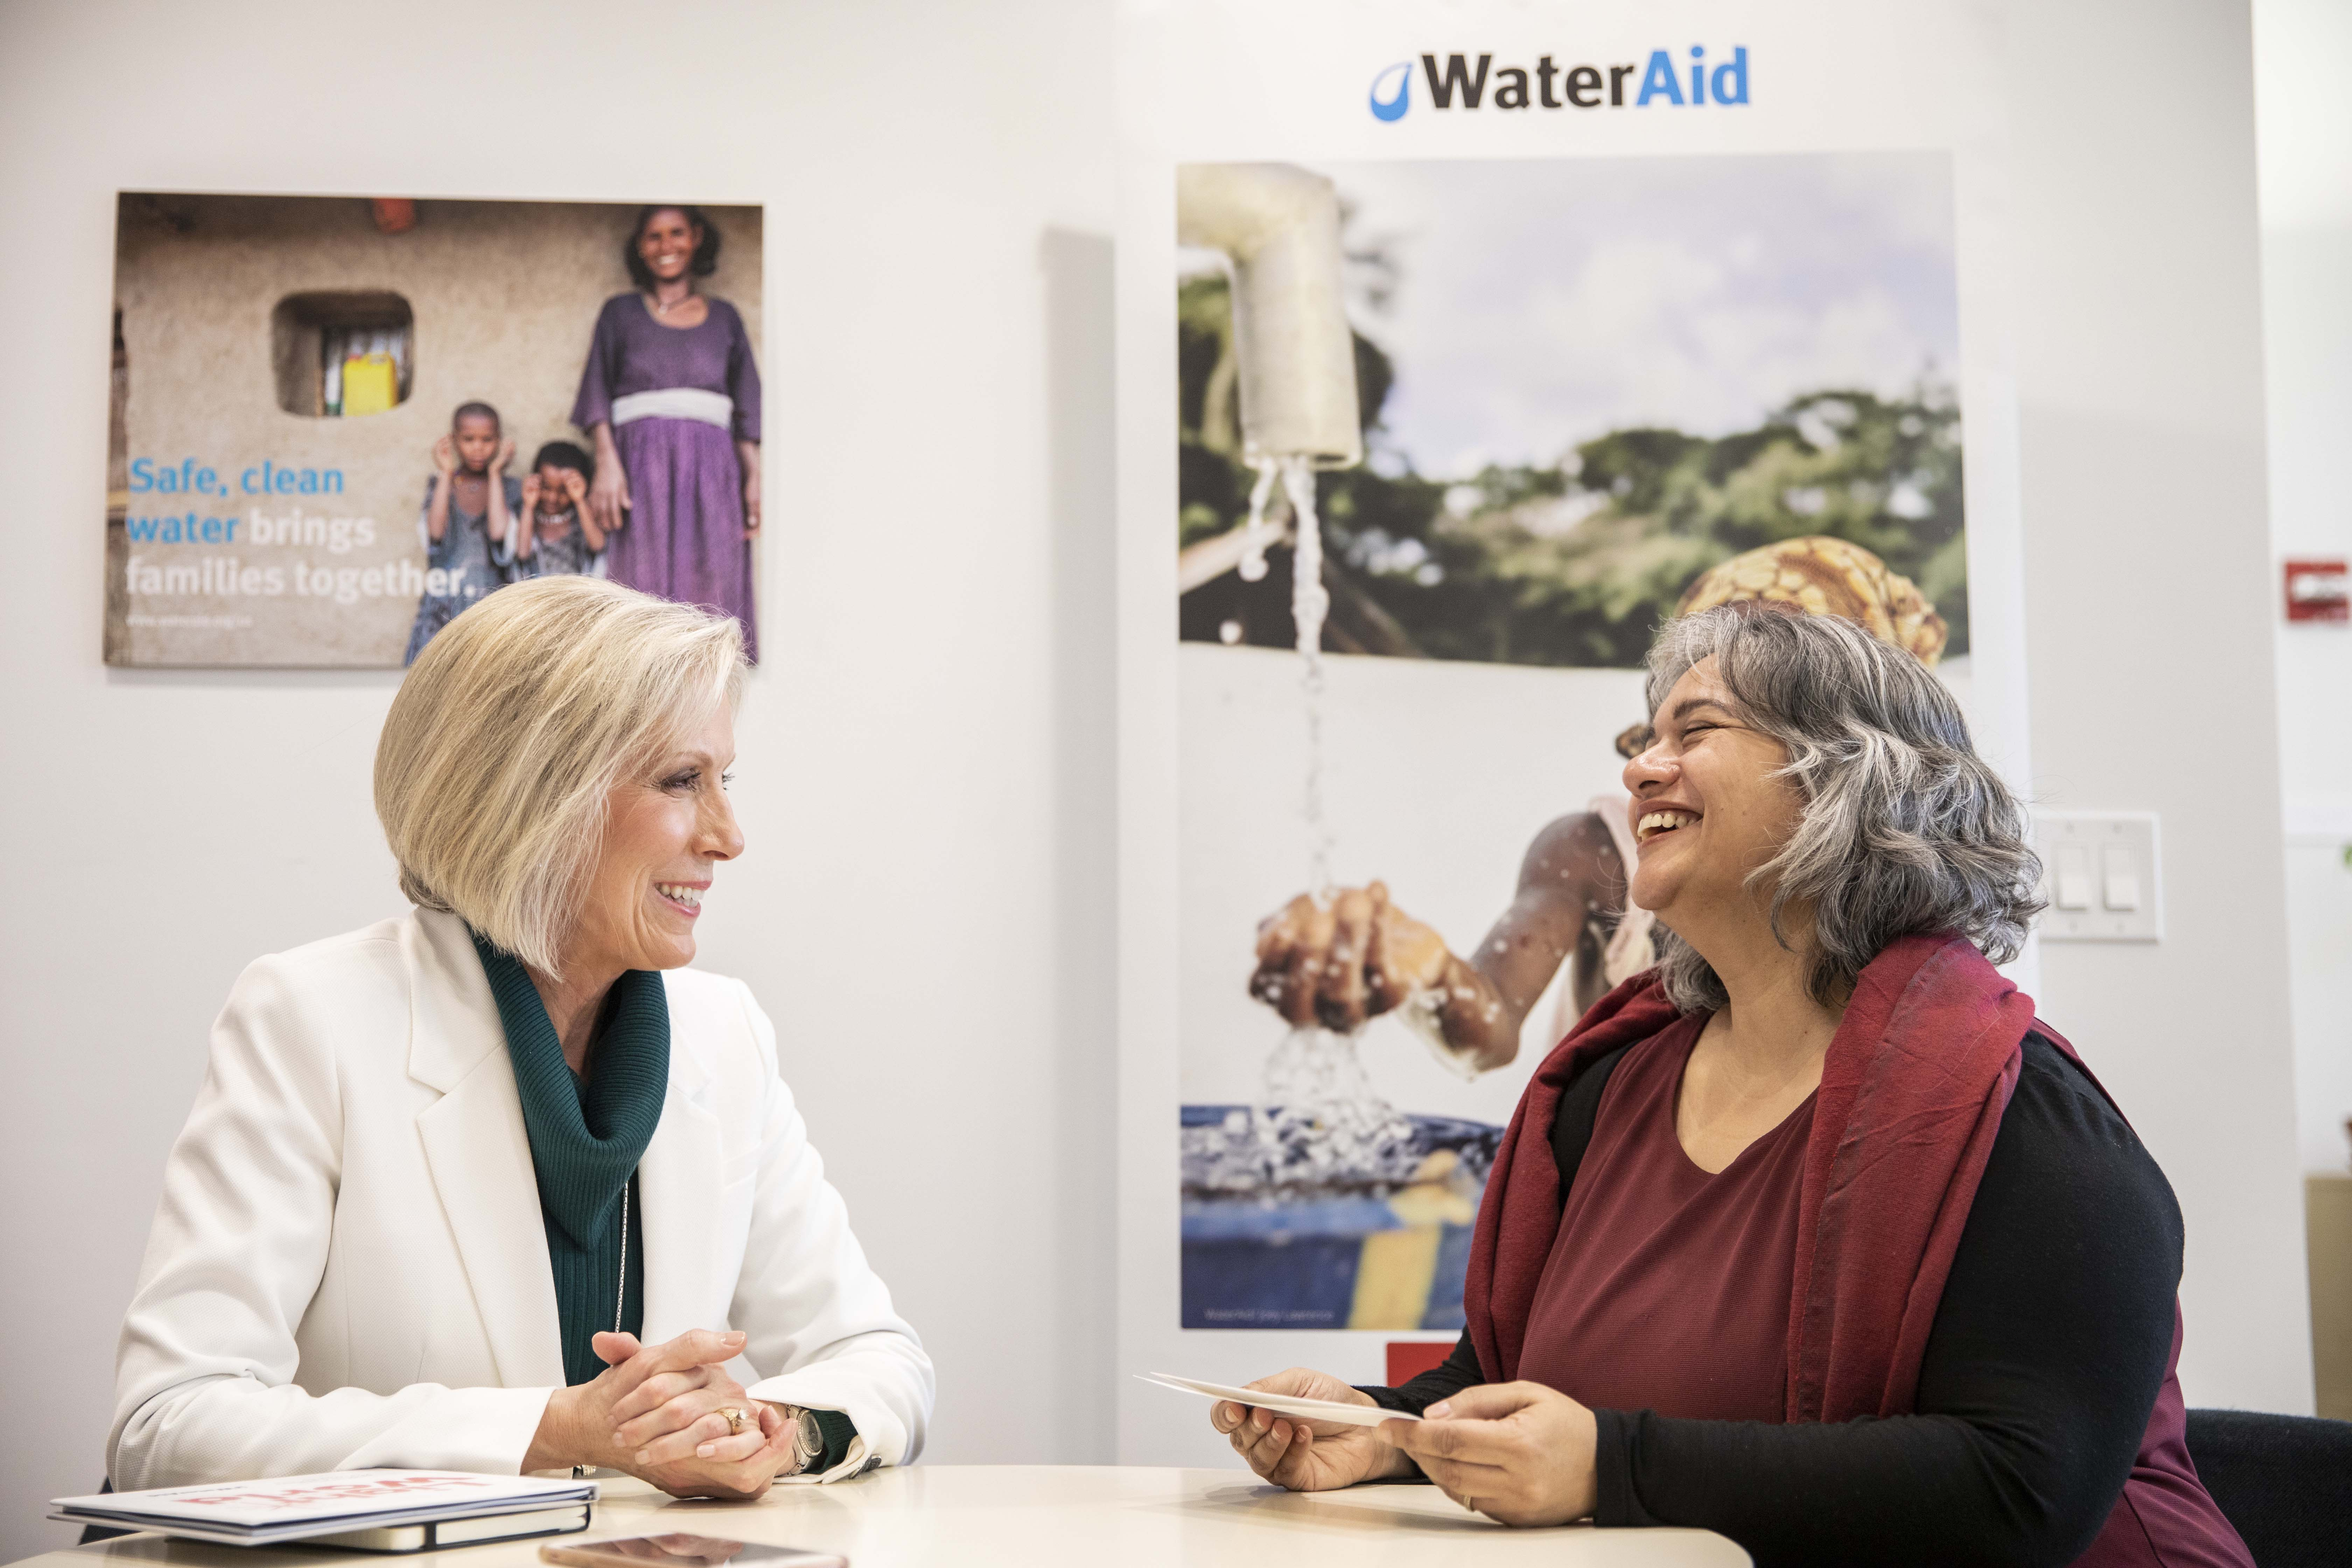 Sister Joy D. Jones, Primary general president, meets with Sarina Prabasi, CEO of WaterAid America, in New York City, Tuesday, February 12, 2019.